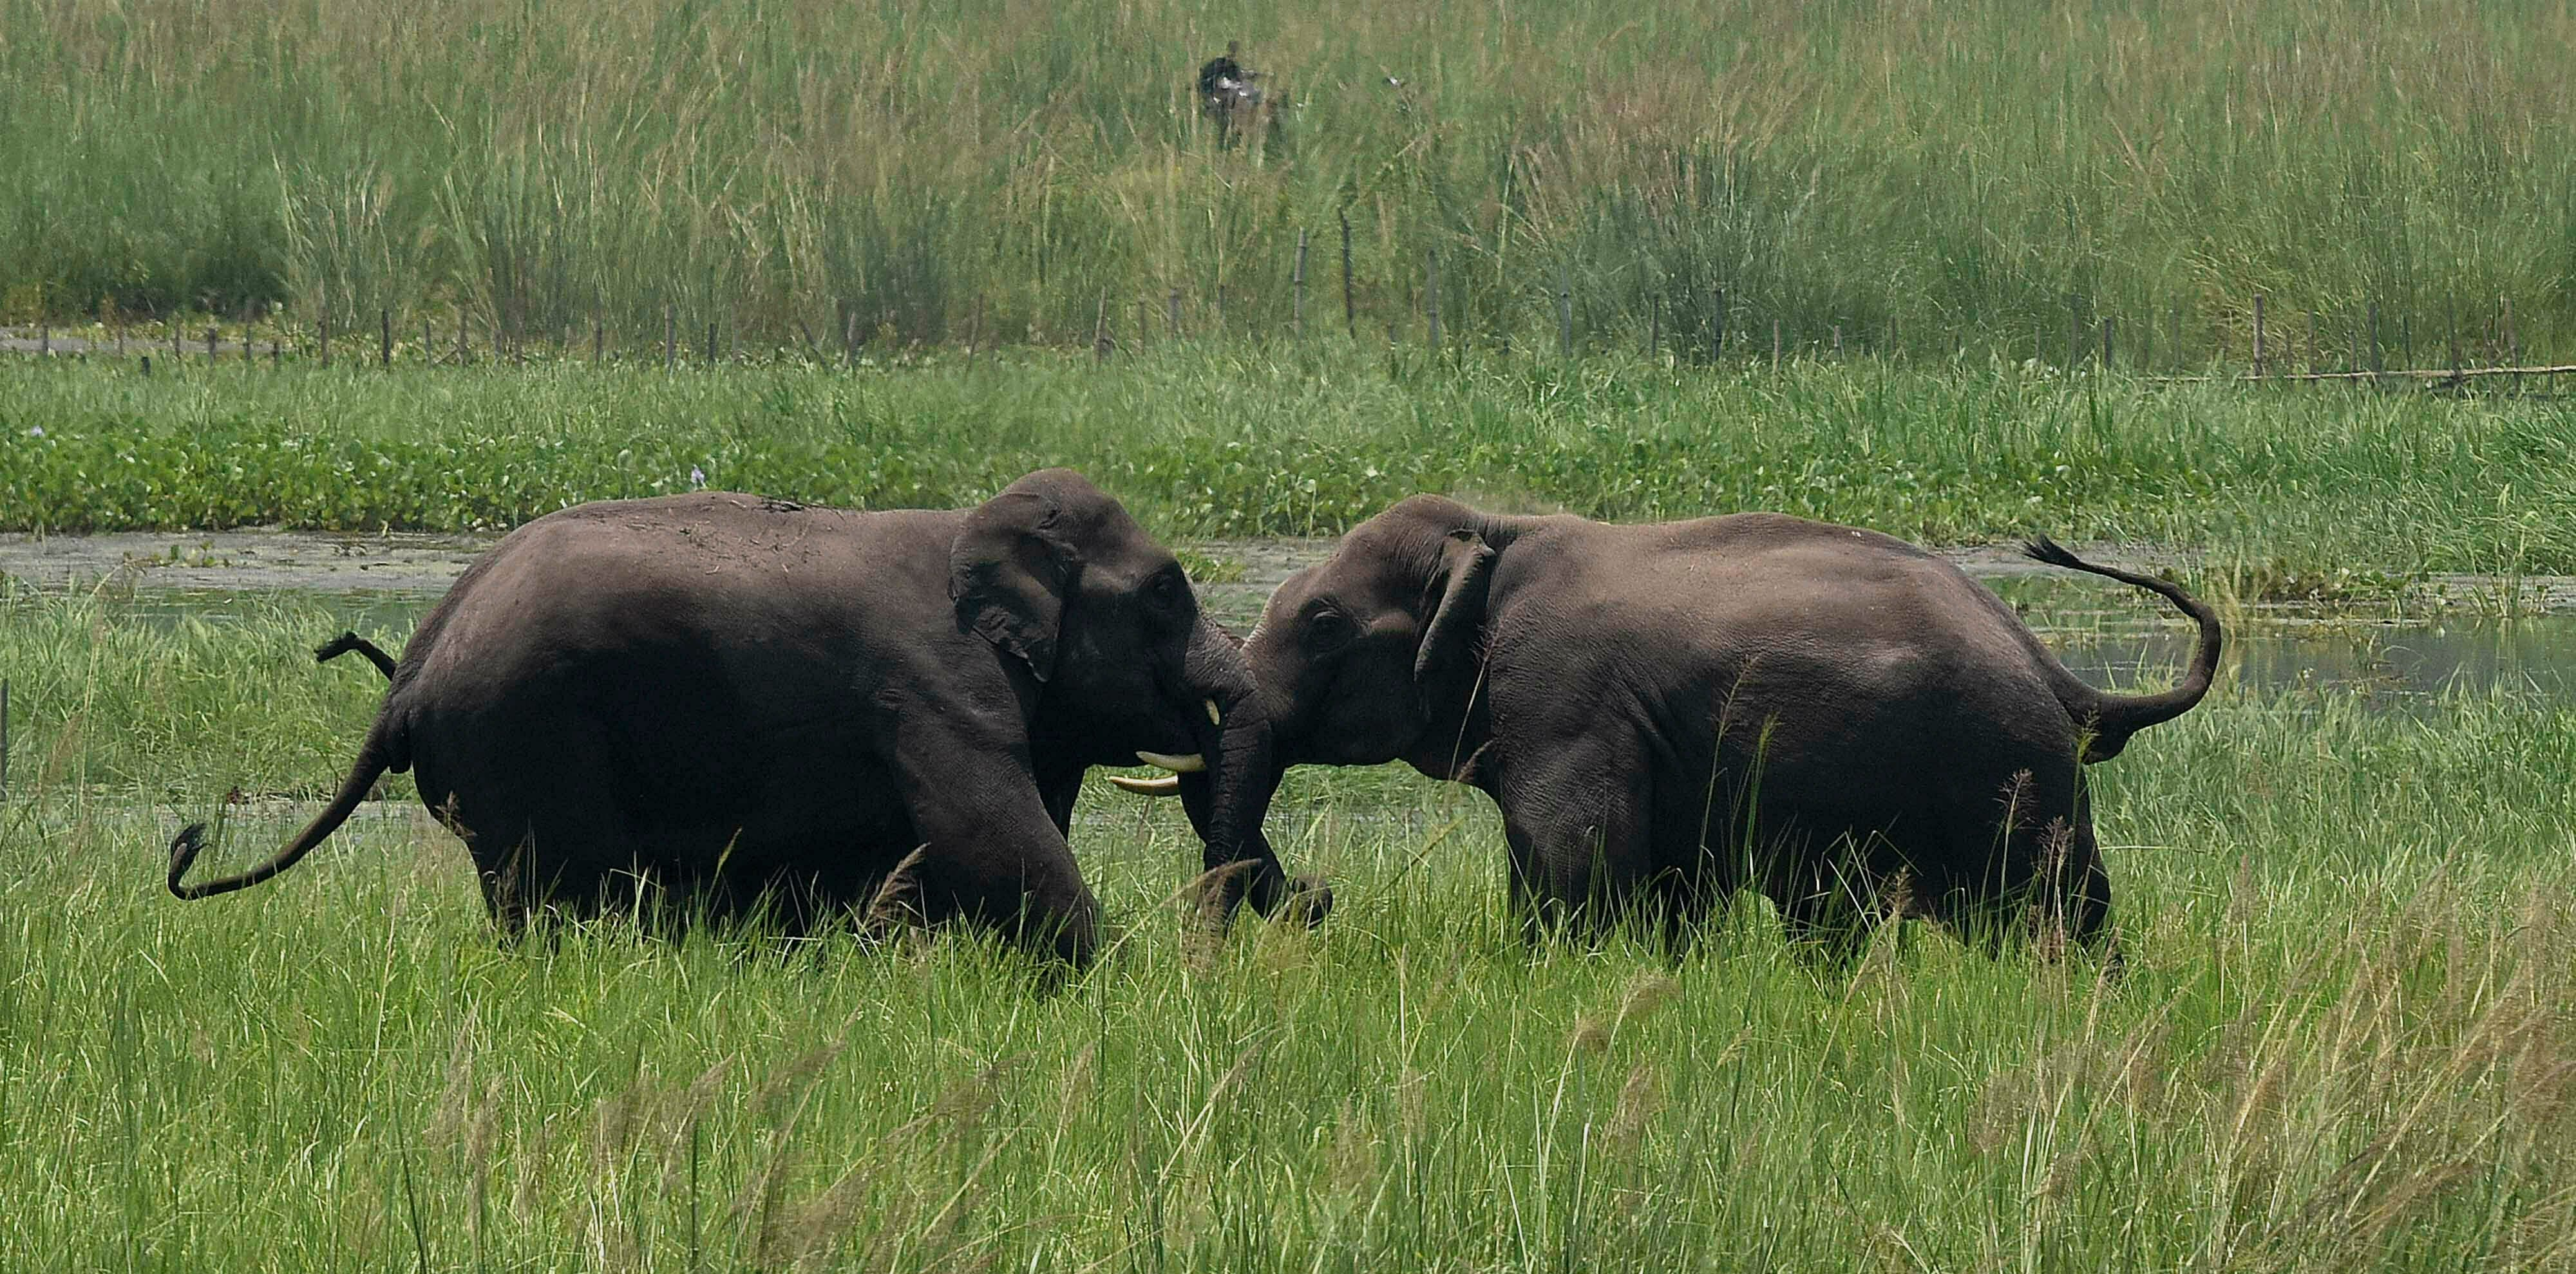 Two wild elephants engage in a tussle on the outskirts of Gauhati, Assam, India.